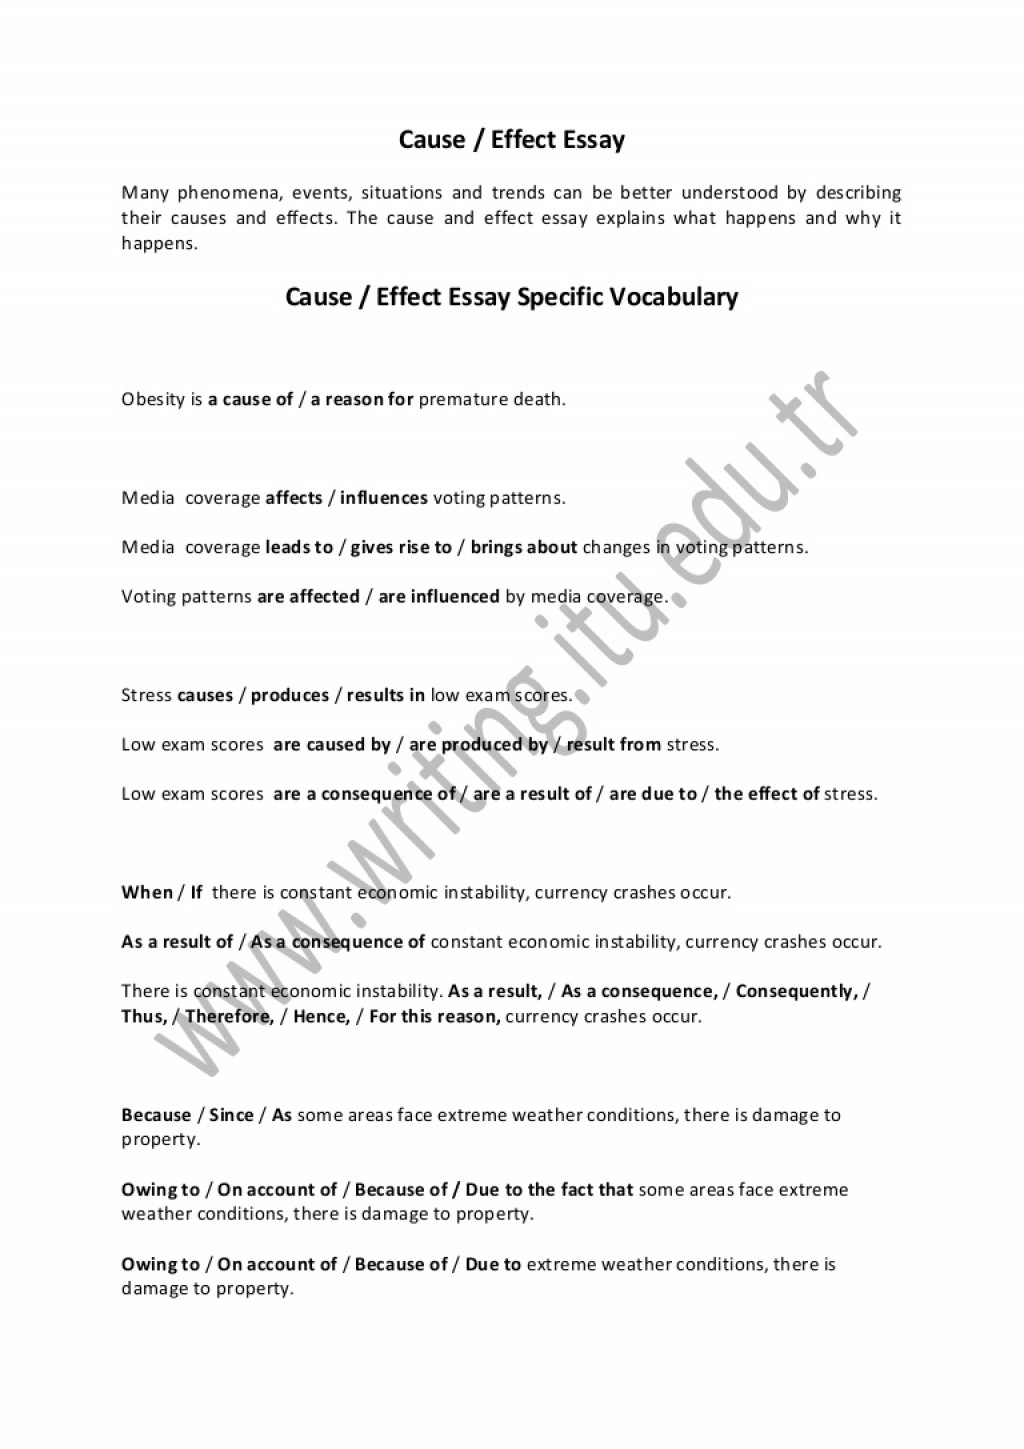 018 Essay Example Prime Causeandeffectessay Thumbnail Outstanding On Minister Narendra Modi In Marathi First Of India Hindi Large